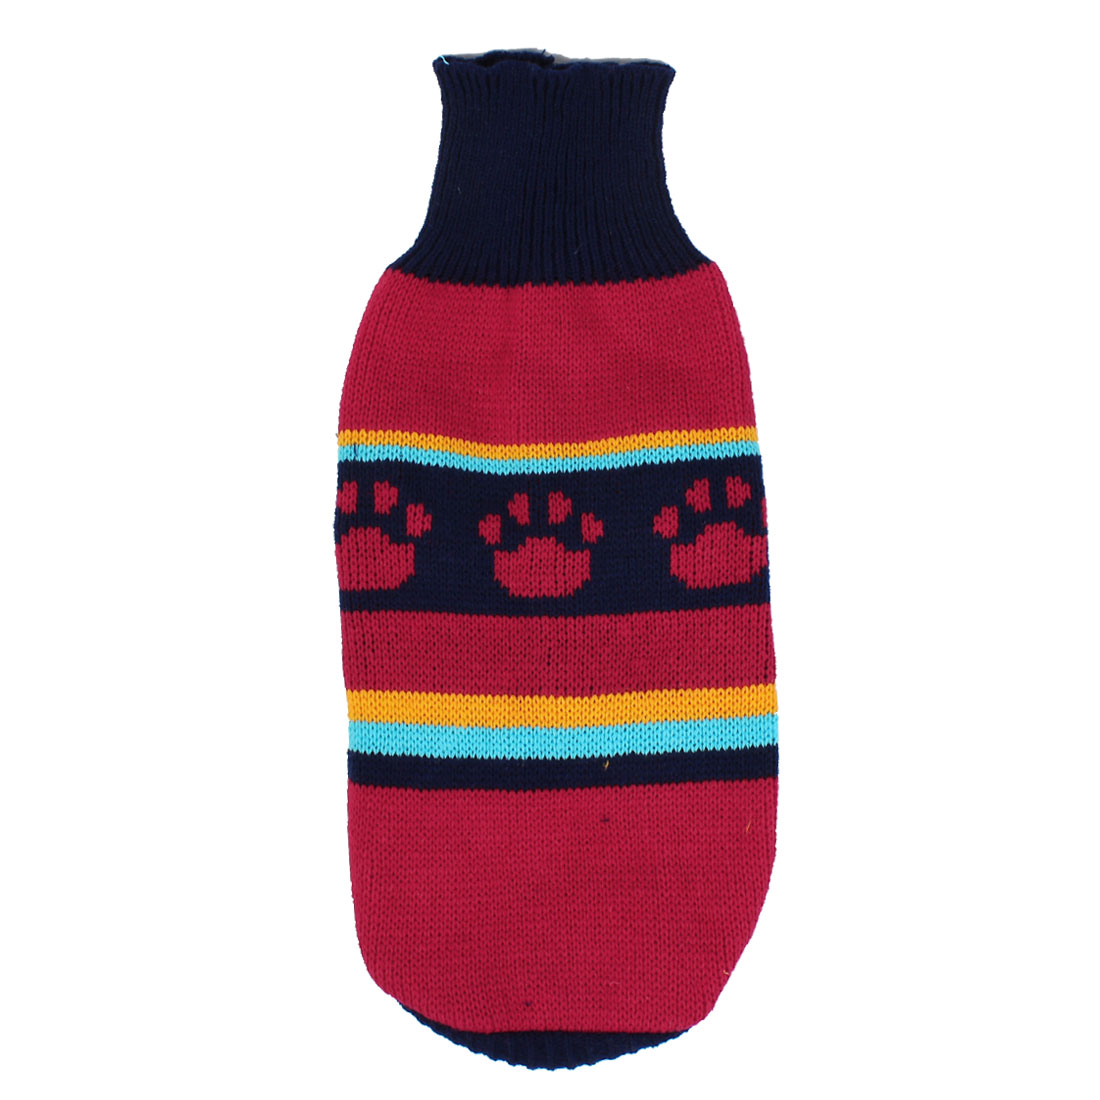 Pet Dog Puppy Claw Print Ribbed Cuff Knitwear Turtleneck Apparel Sweater Dark Blue Red Size S